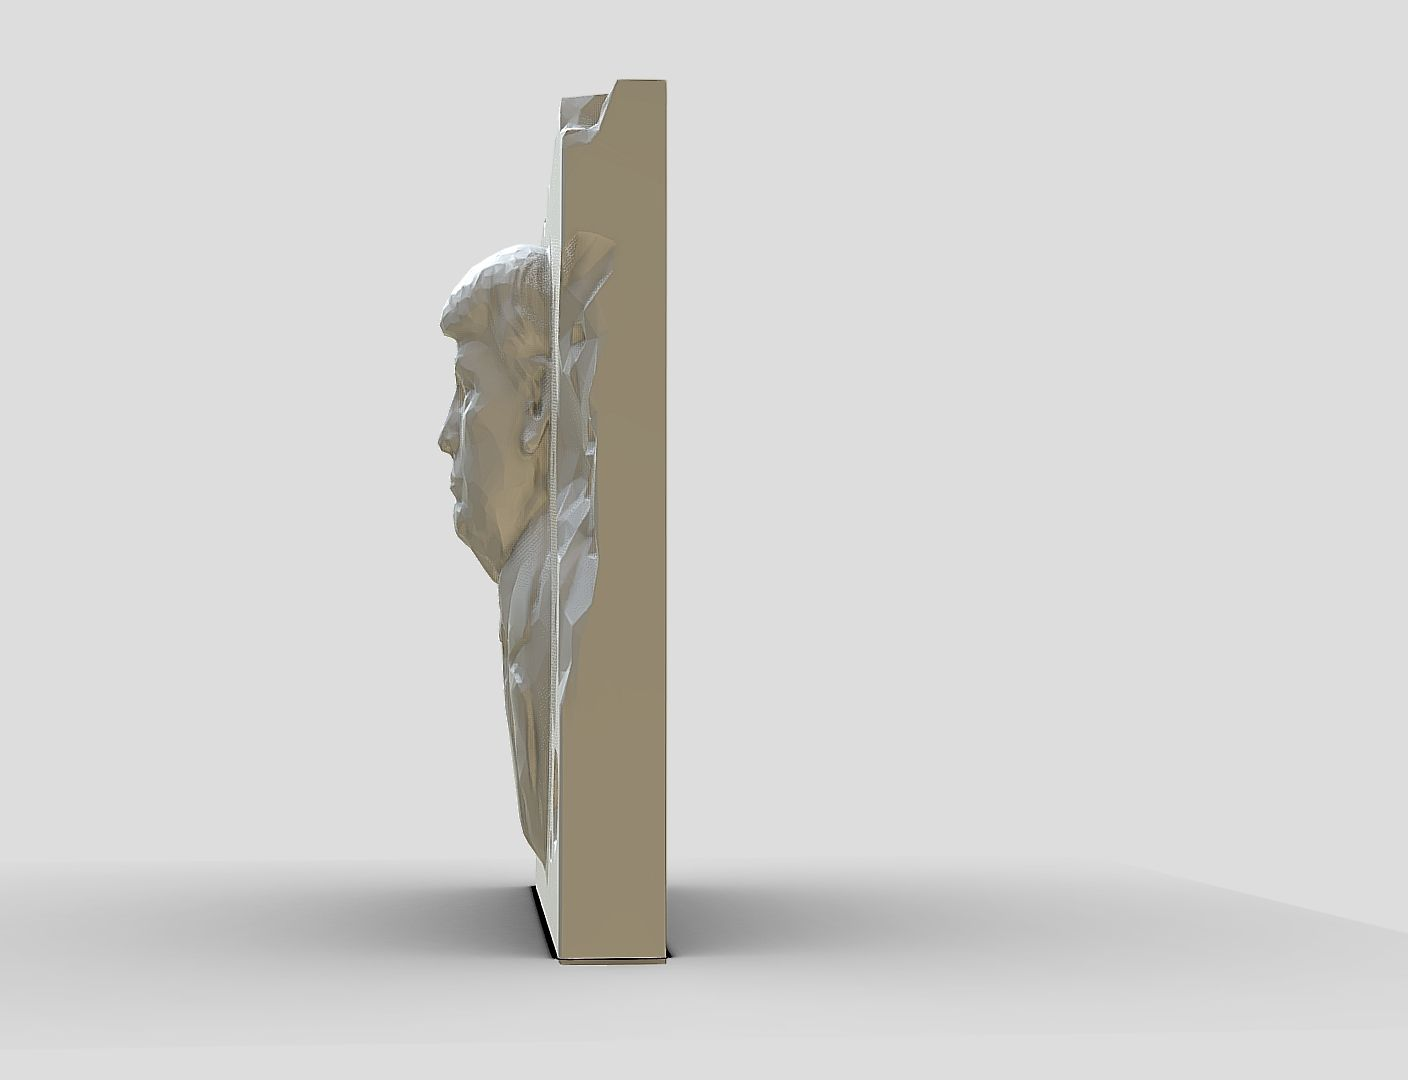 Preview02.jpg Download STL file Target on the wall • 3D print design, MWopus